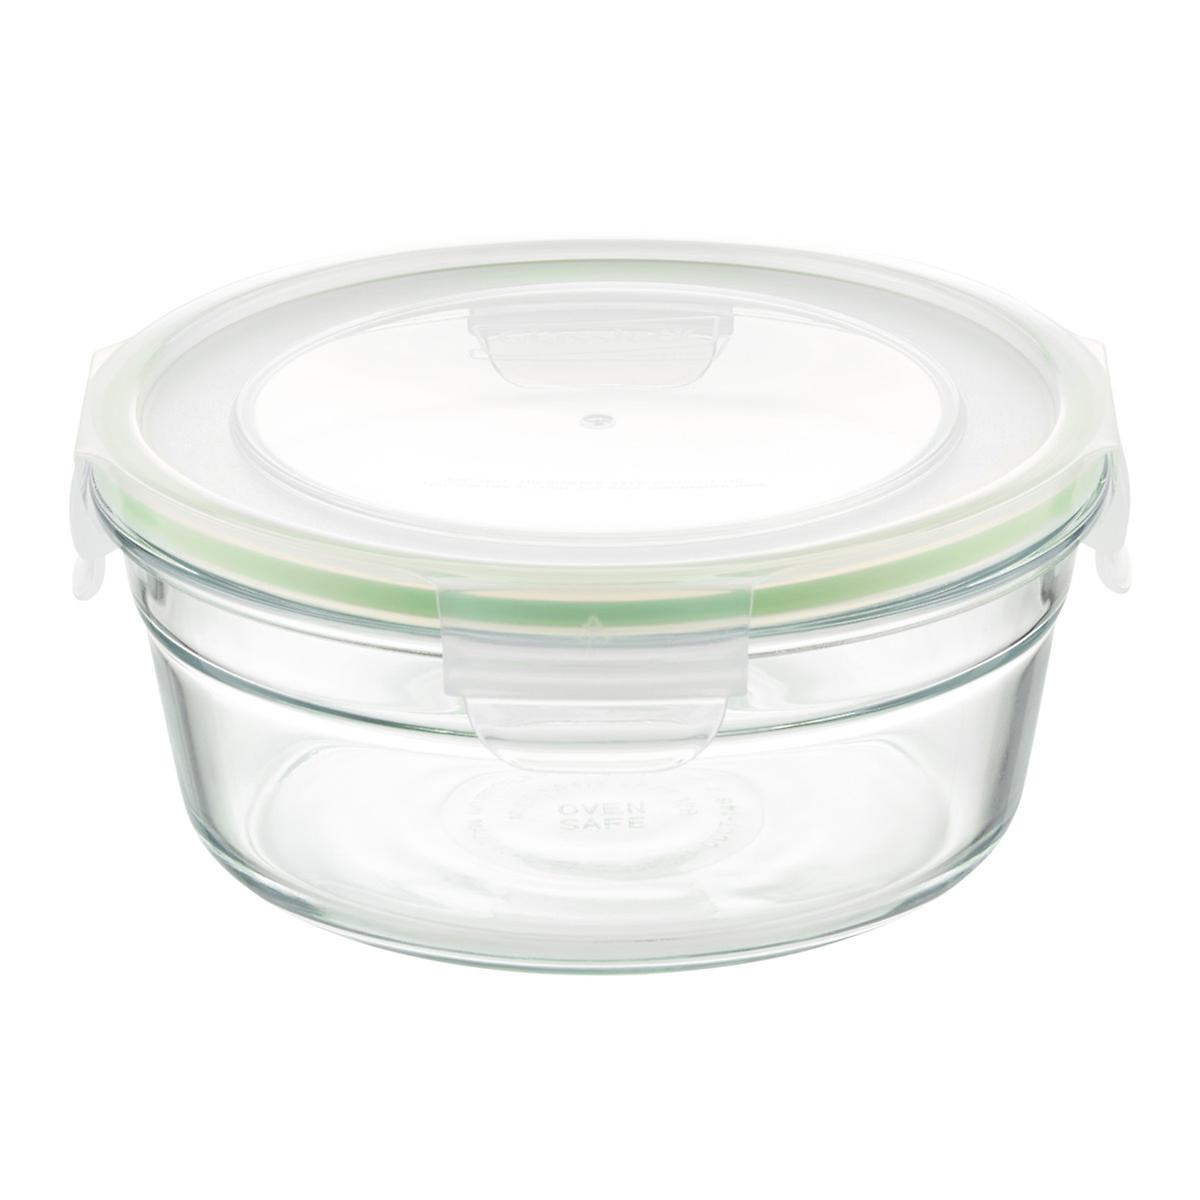 Set Of Glasslock Round Food Containers With Lids The